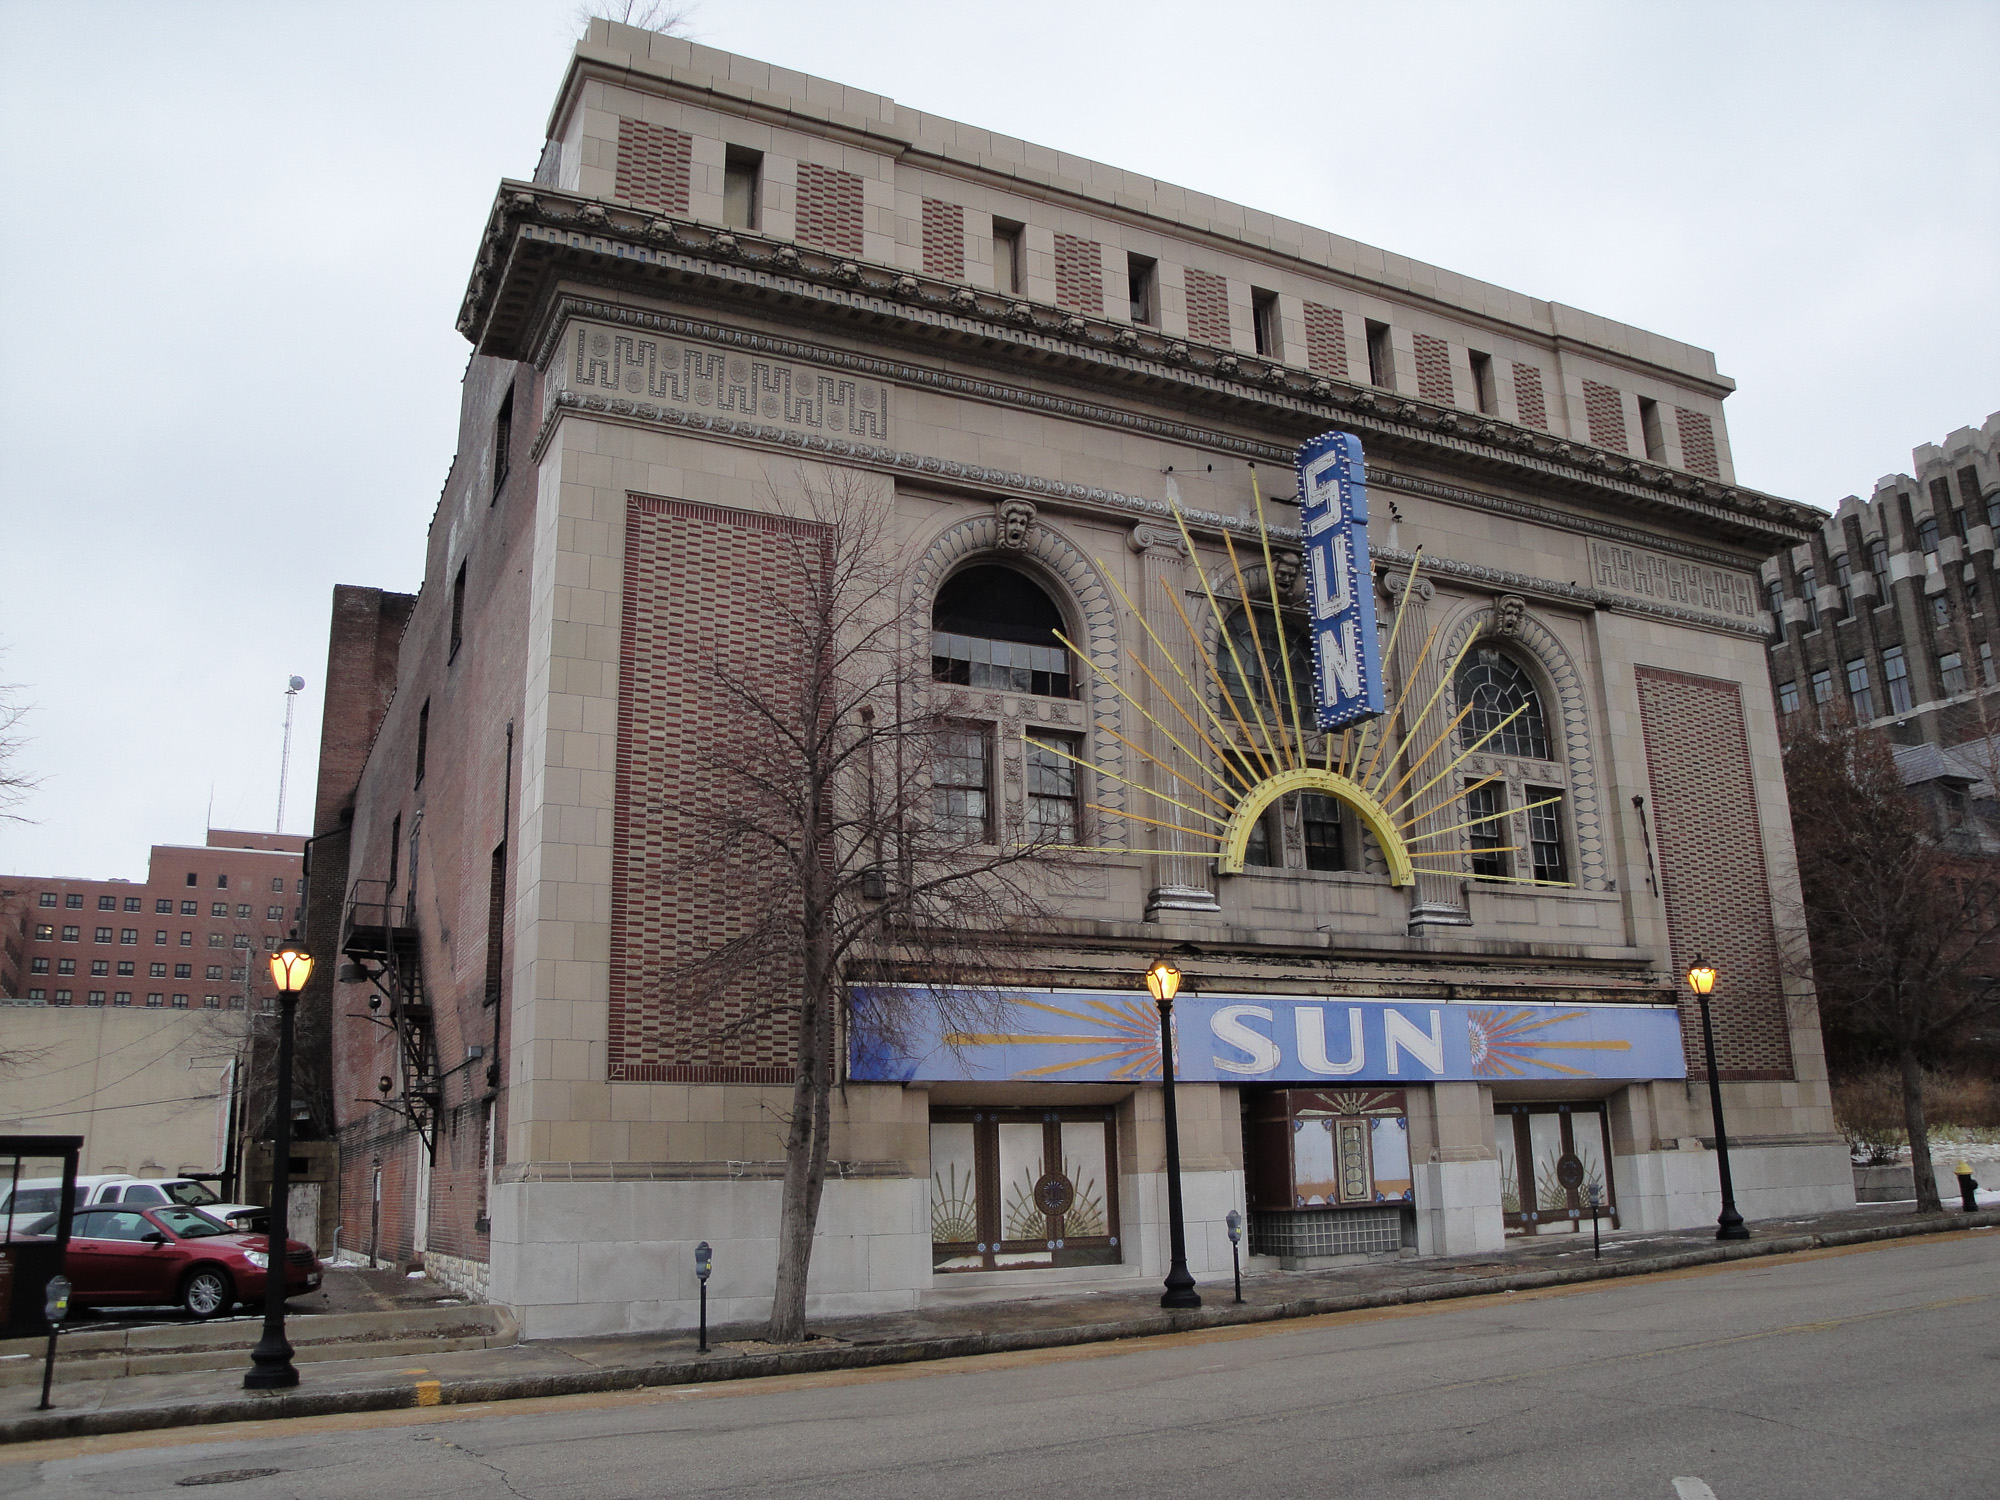 Sun-Theater-St-Louis-1.jpg